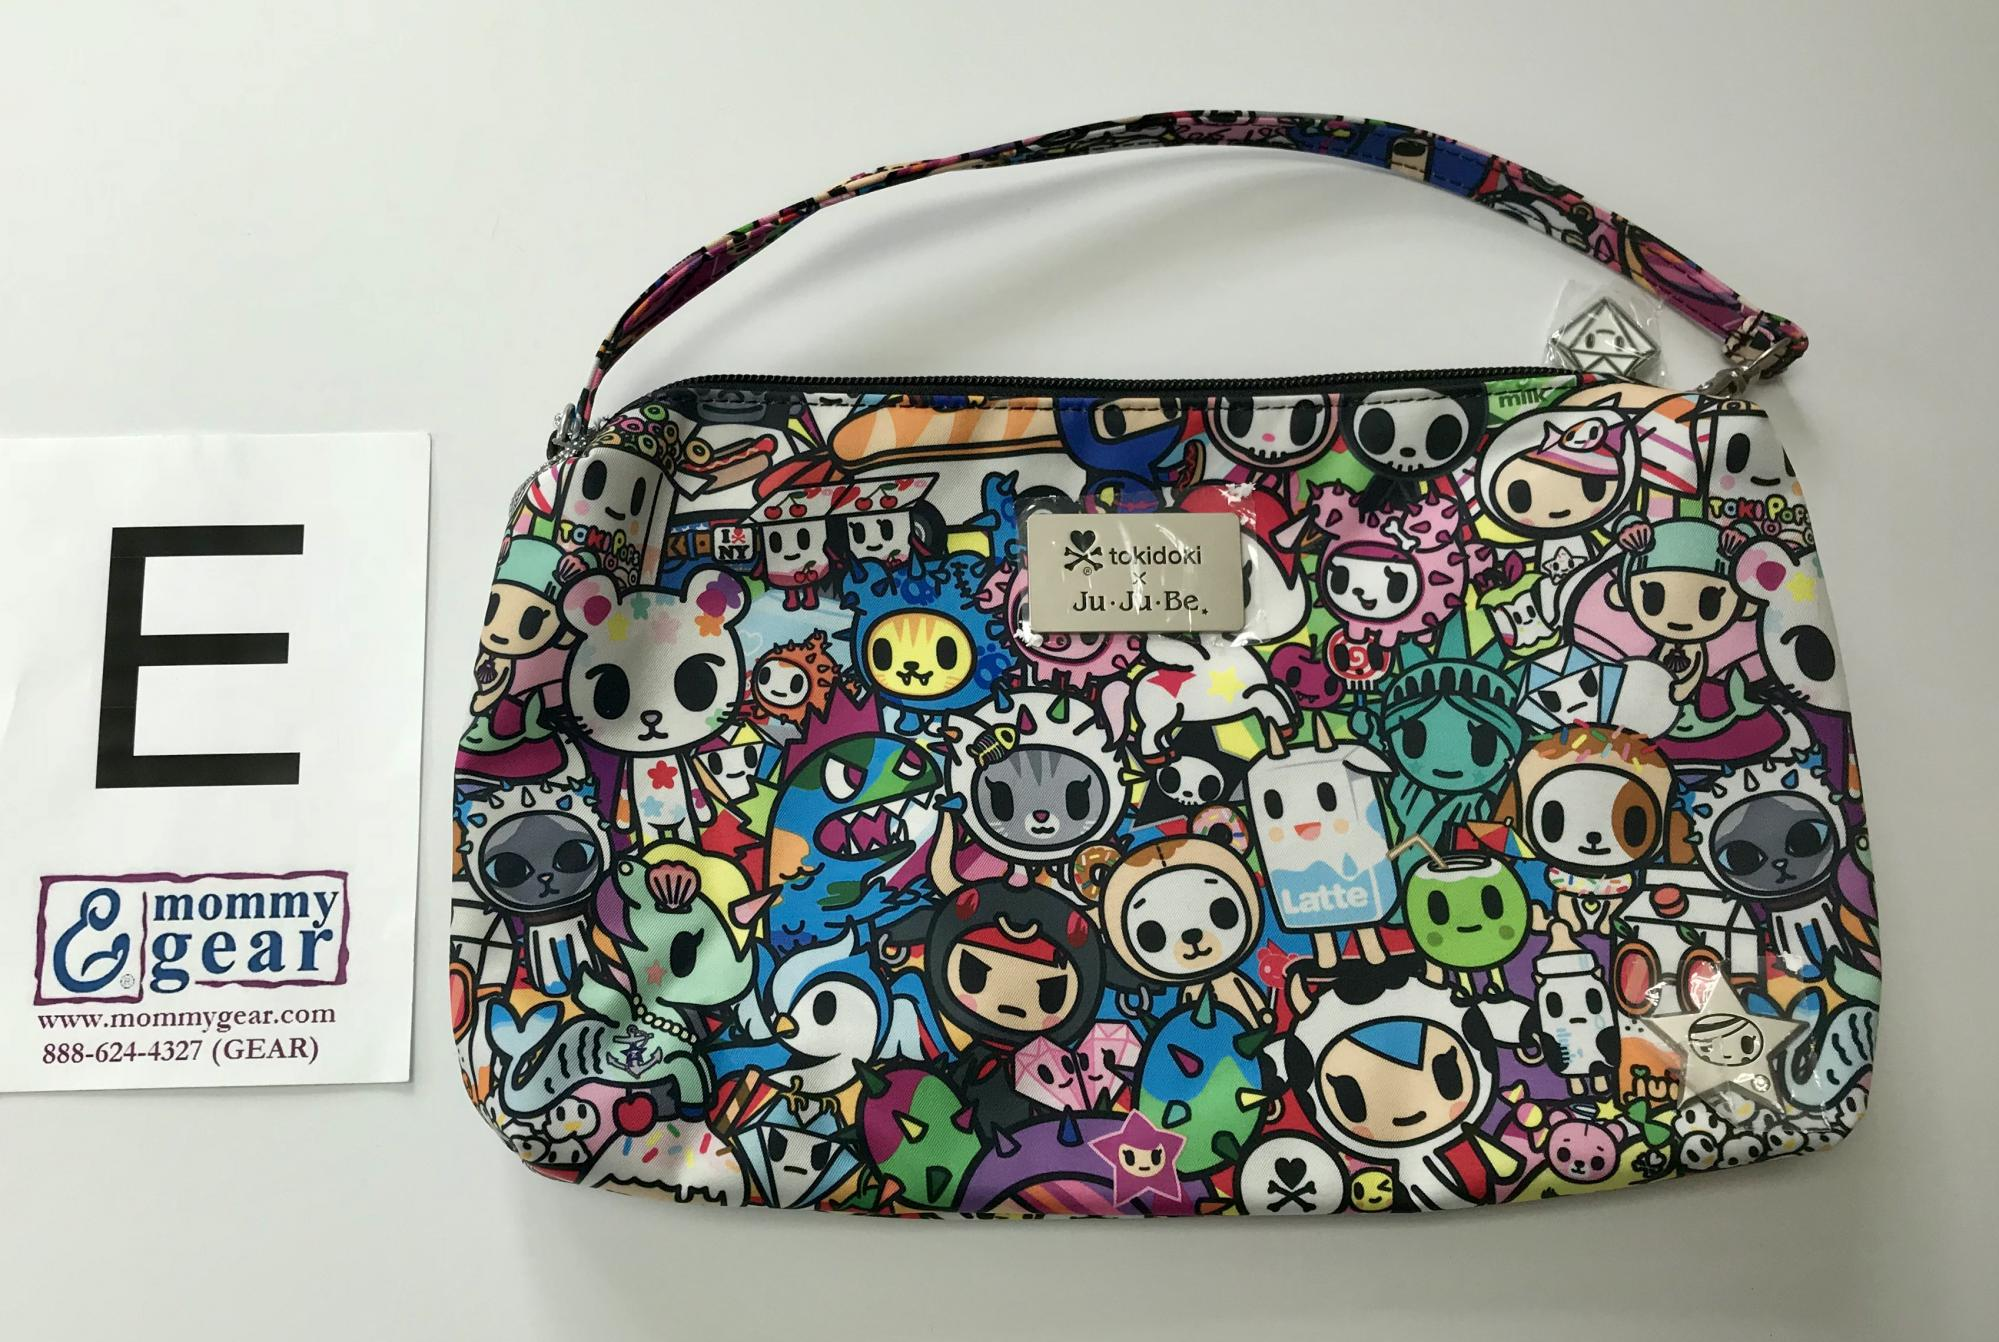 ju-ju-be-tokidoki-iconic-2.0-be-quick-pp-e.jpg